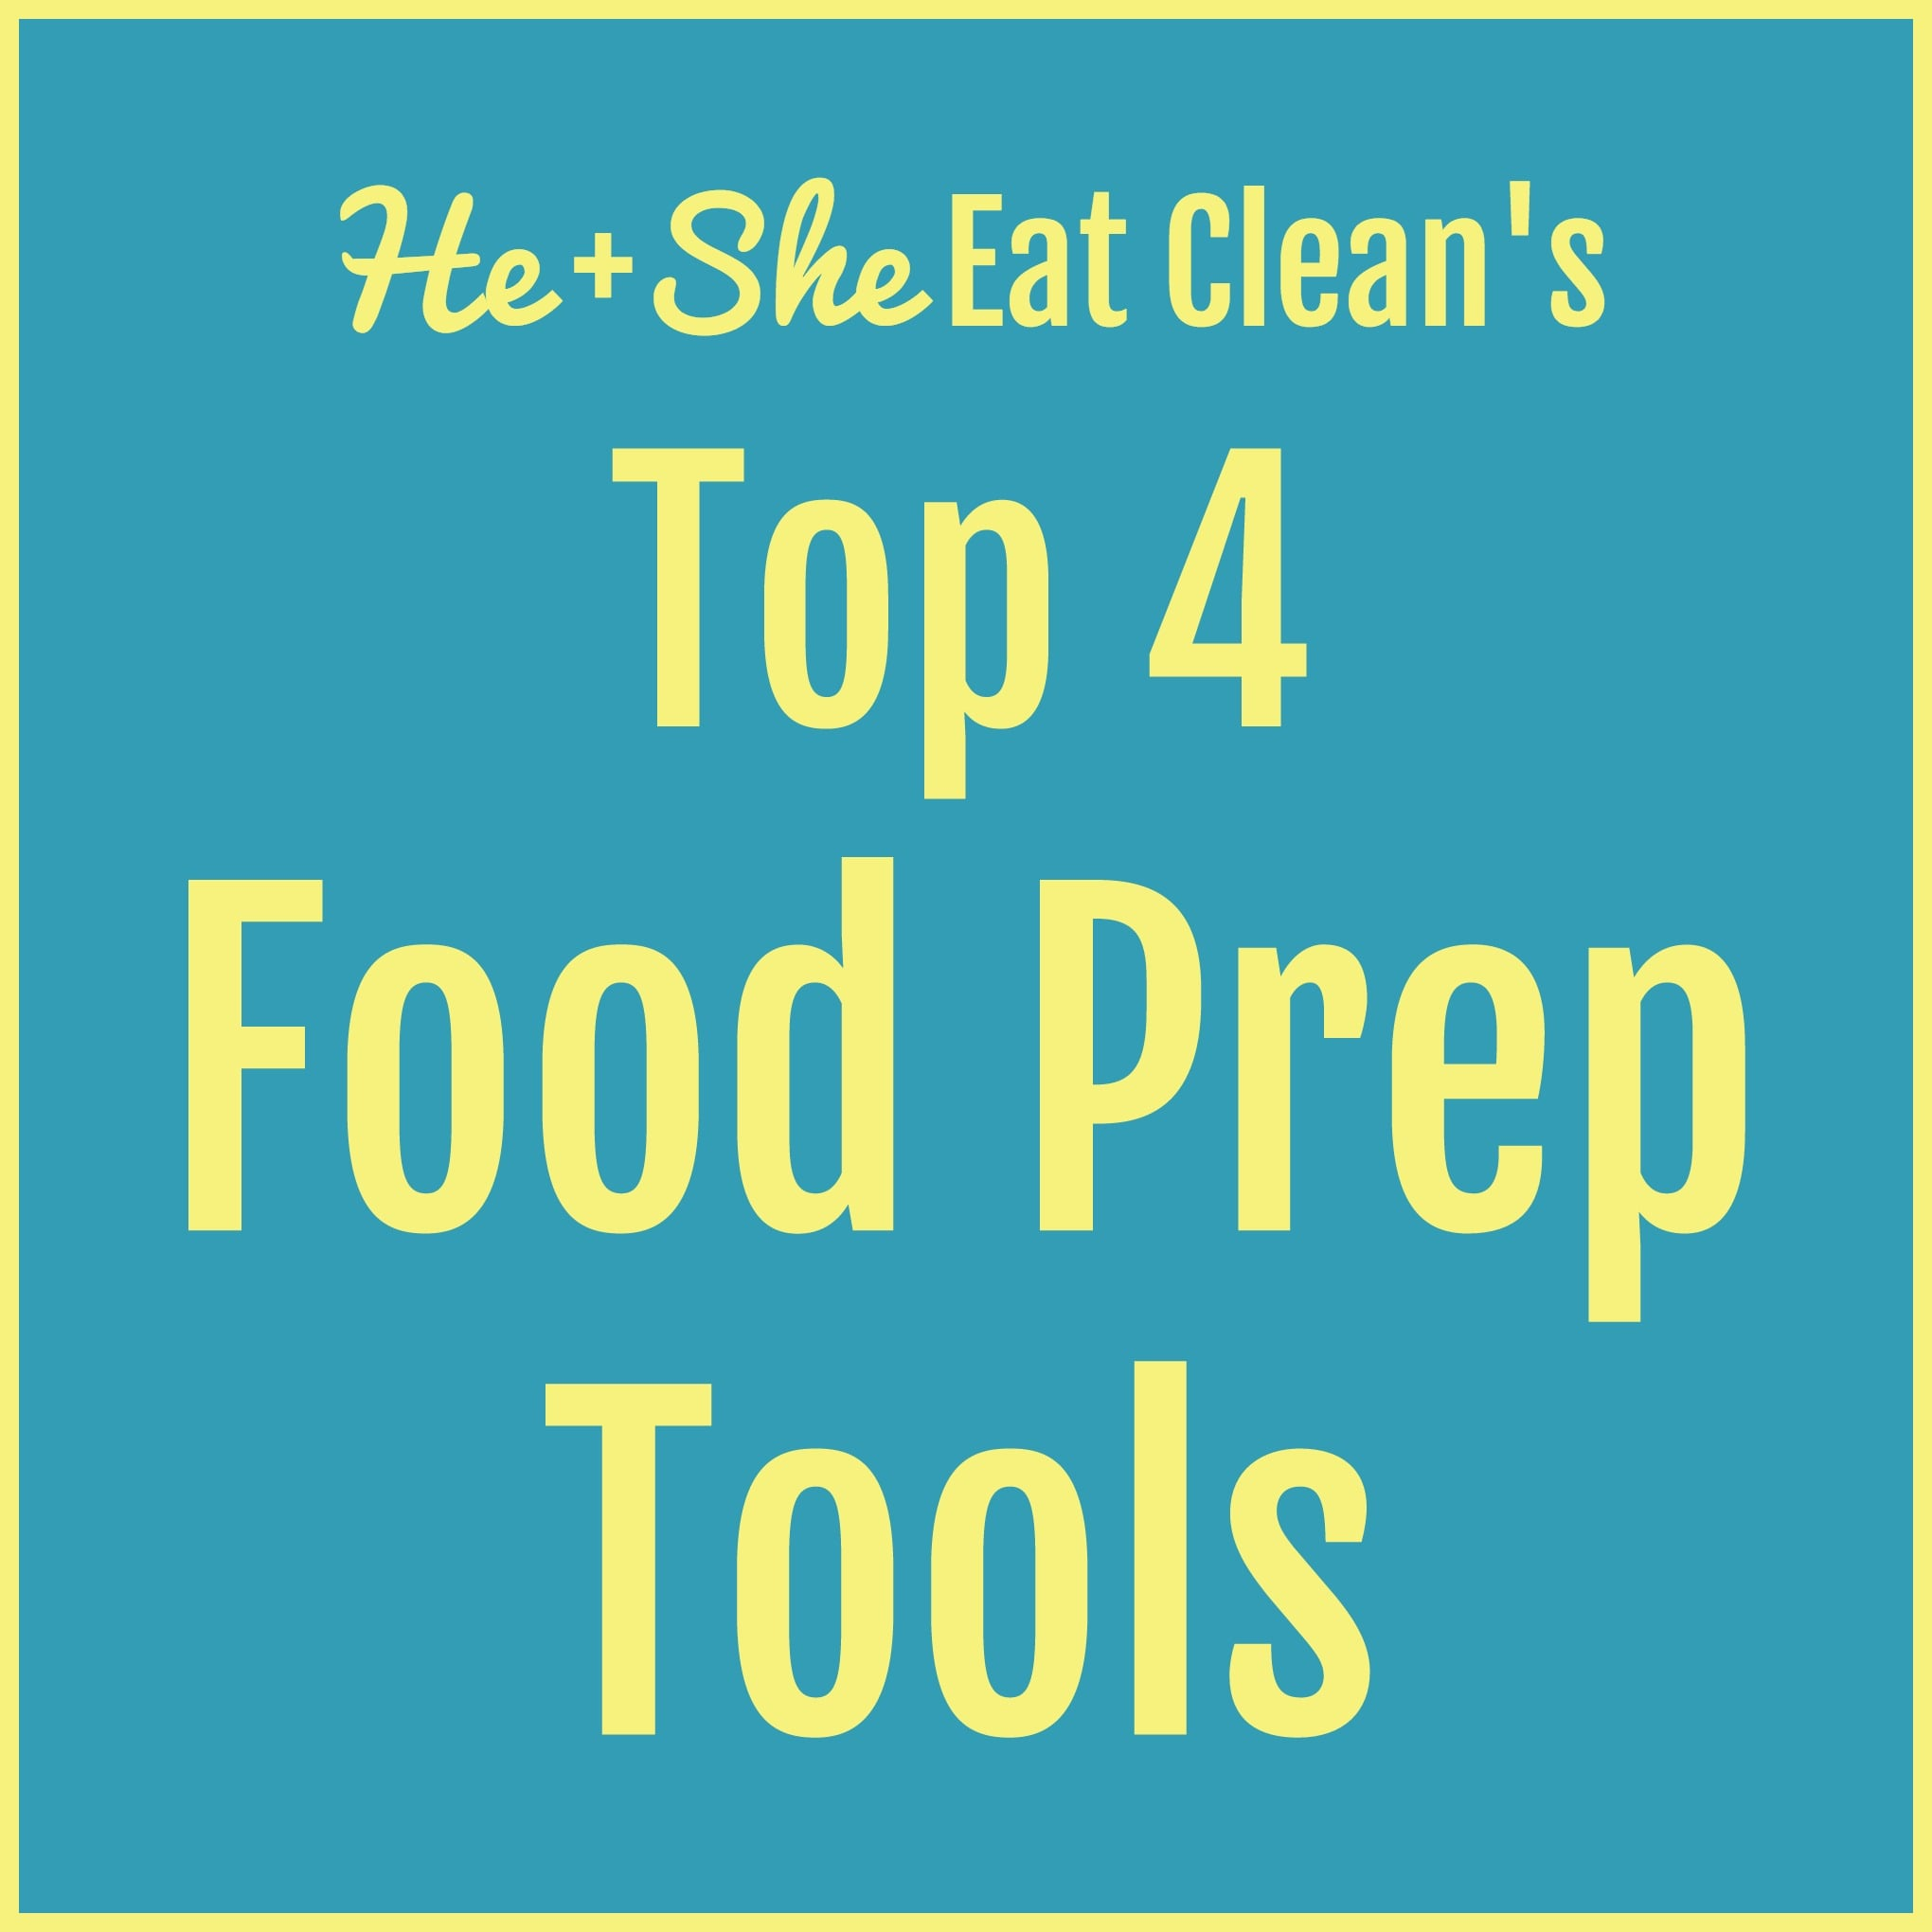 Our Top 4 Food Prep Tools